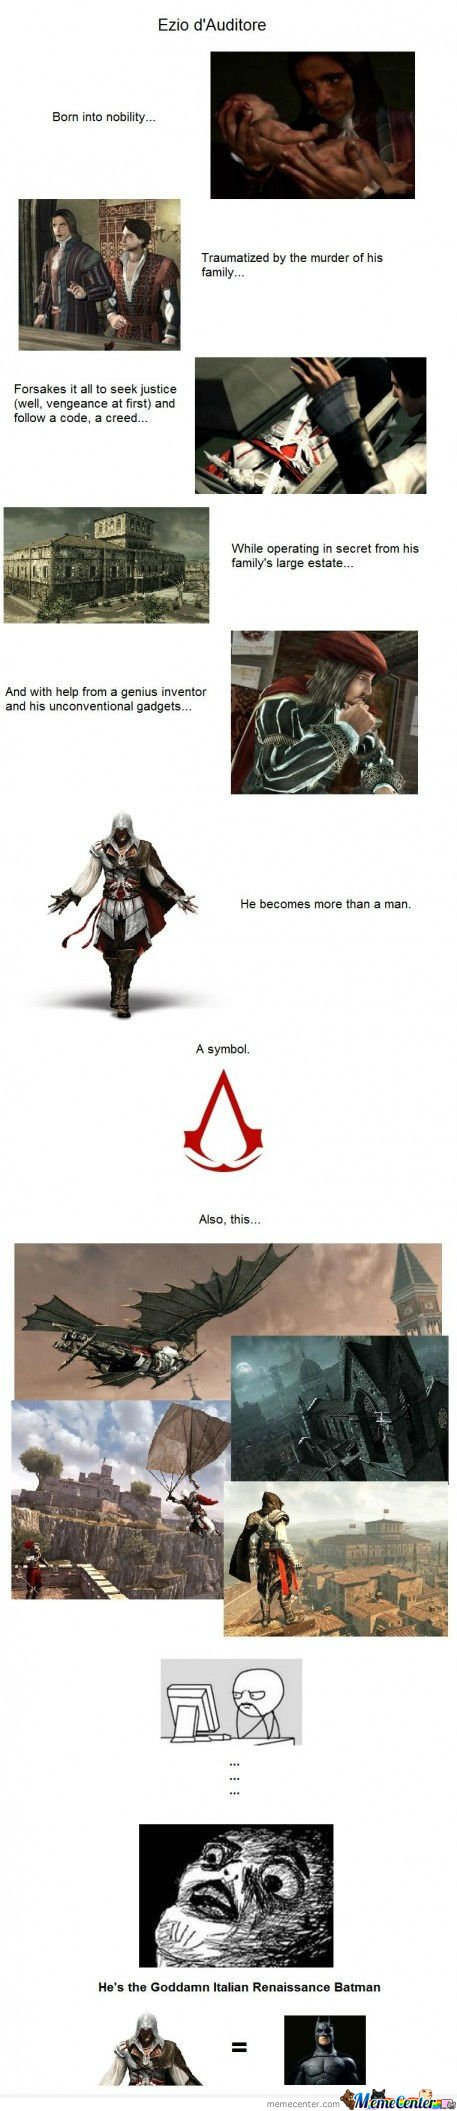 The story of Ezio d'Auditore